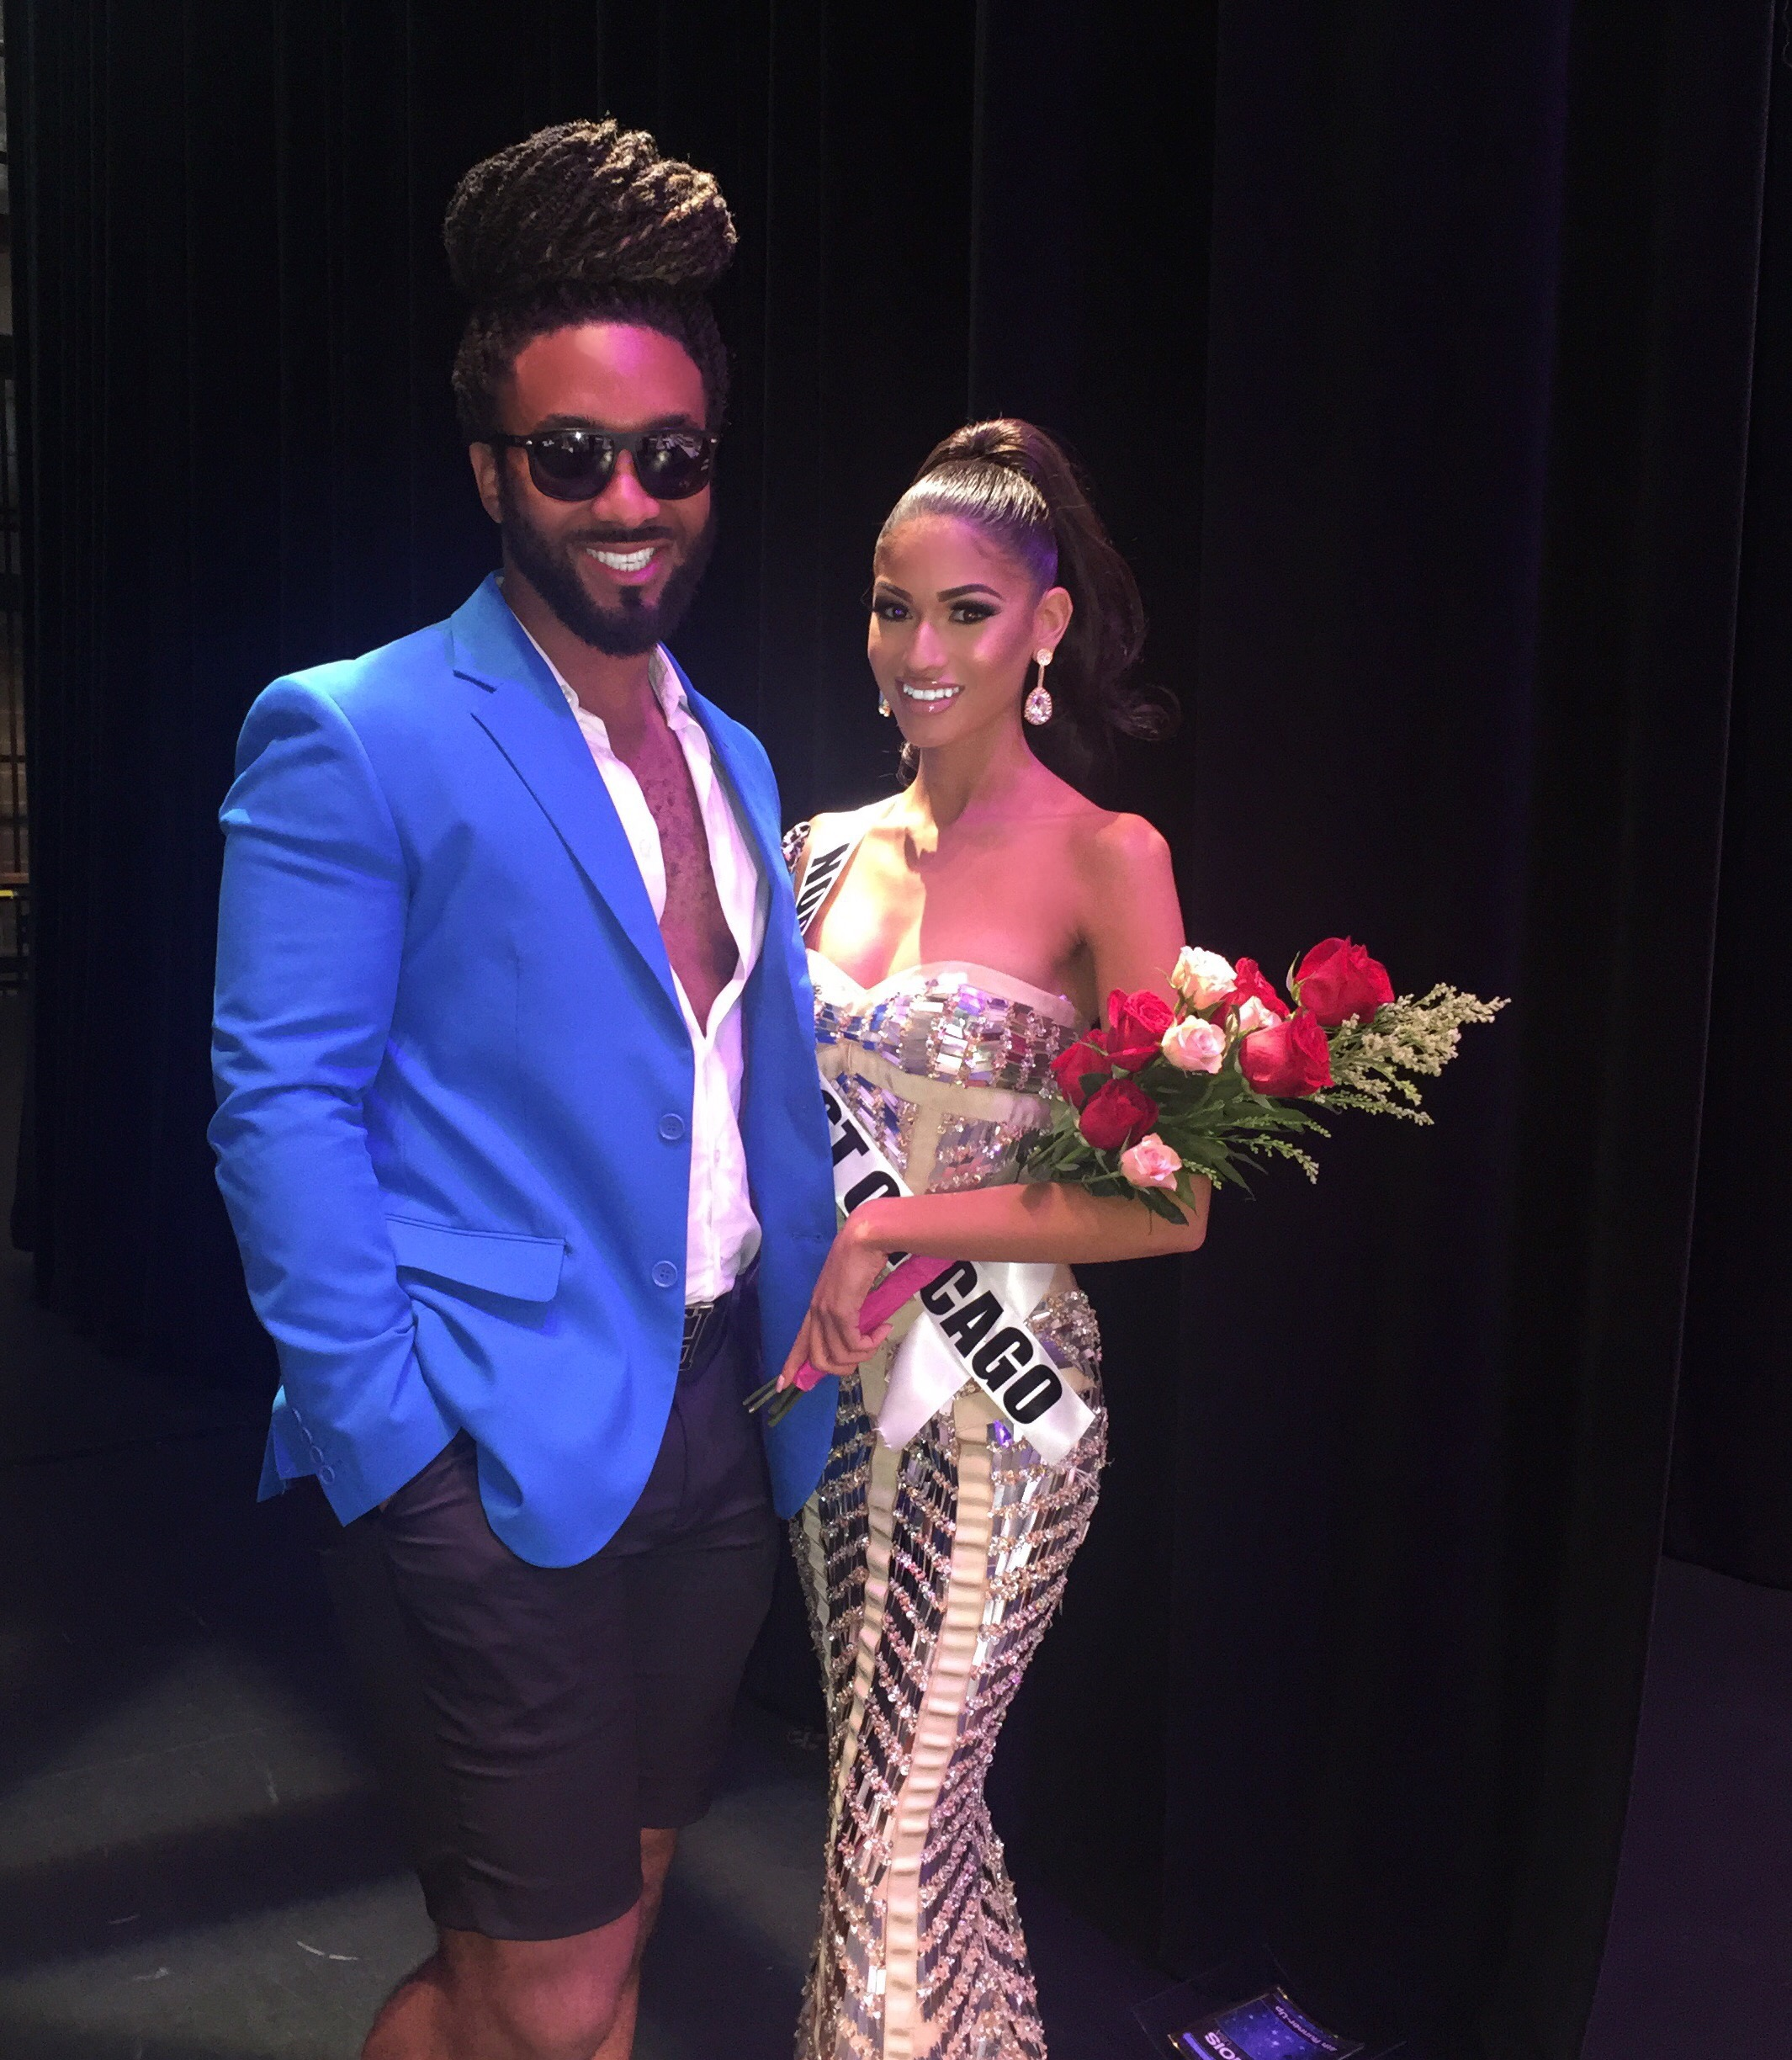 Jonathan Abernathy and Client Angel Reyes, 4th Runner up Miss Illinois USA 2017